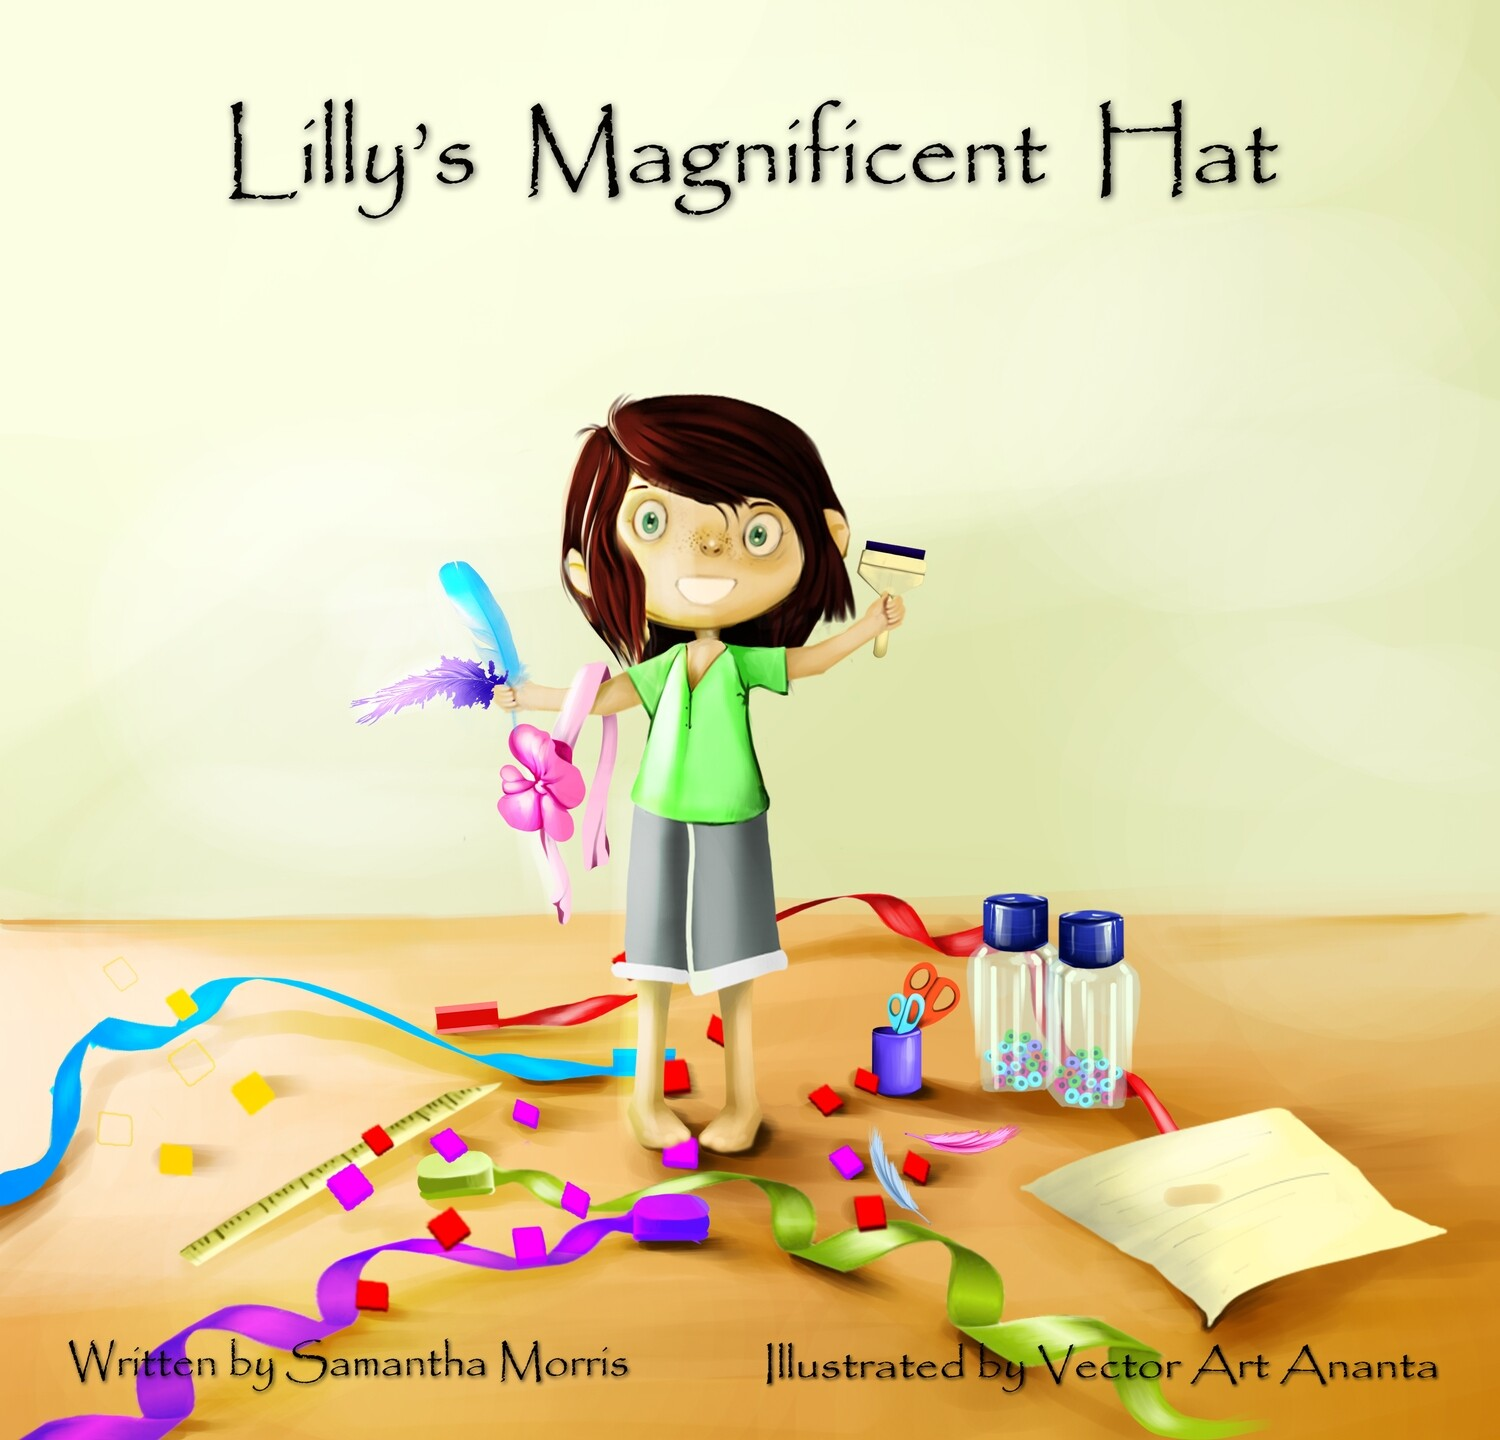 Lilly's Magnificent Hat